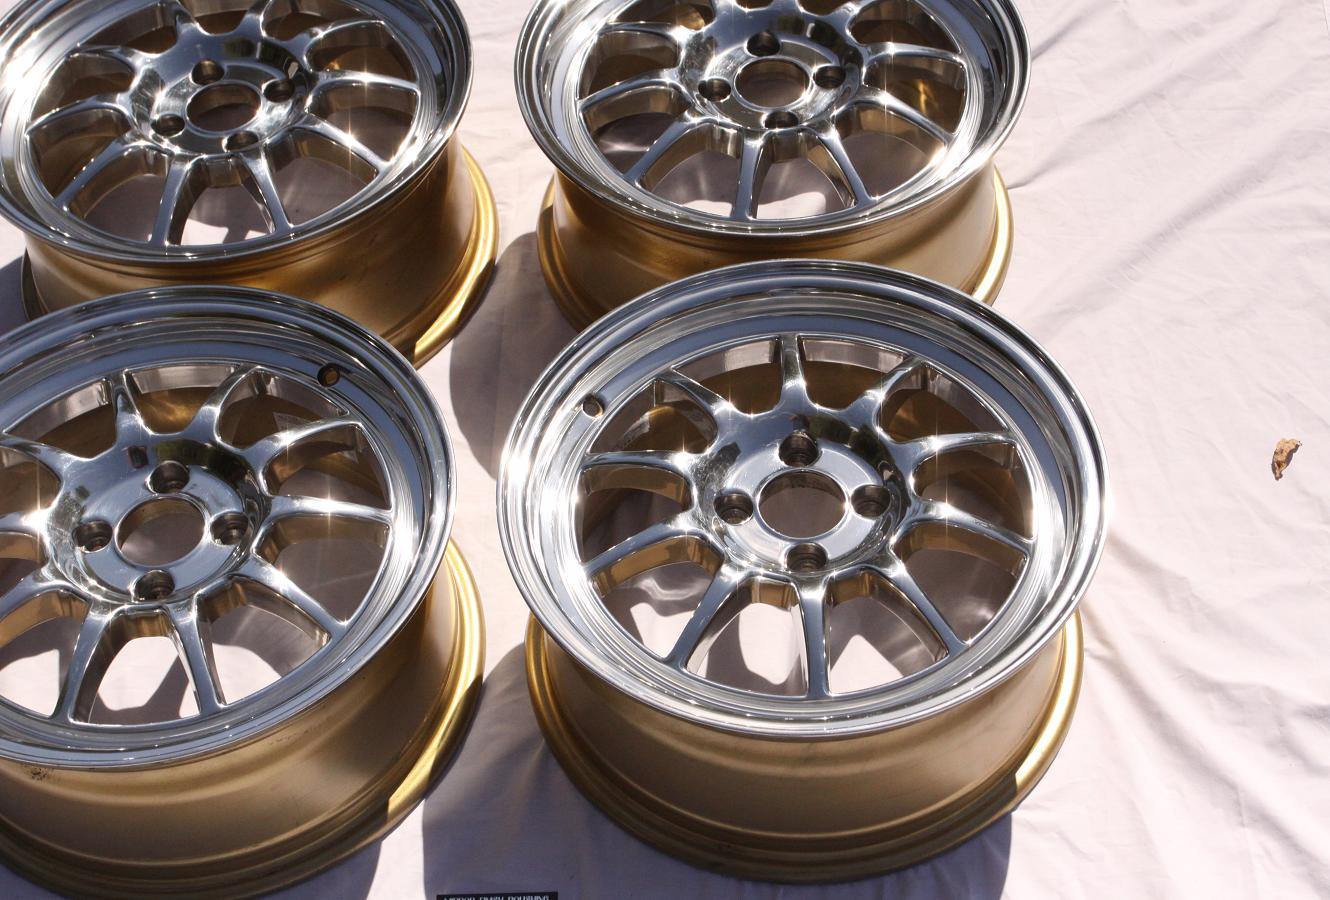 Polish Aluminum Wheels Mirror Finish http://www.talonclub.com/forum/showthread.php?17402-Drag-DR16-Customer-Wheels-AFTER-Metal-Polishing-Services